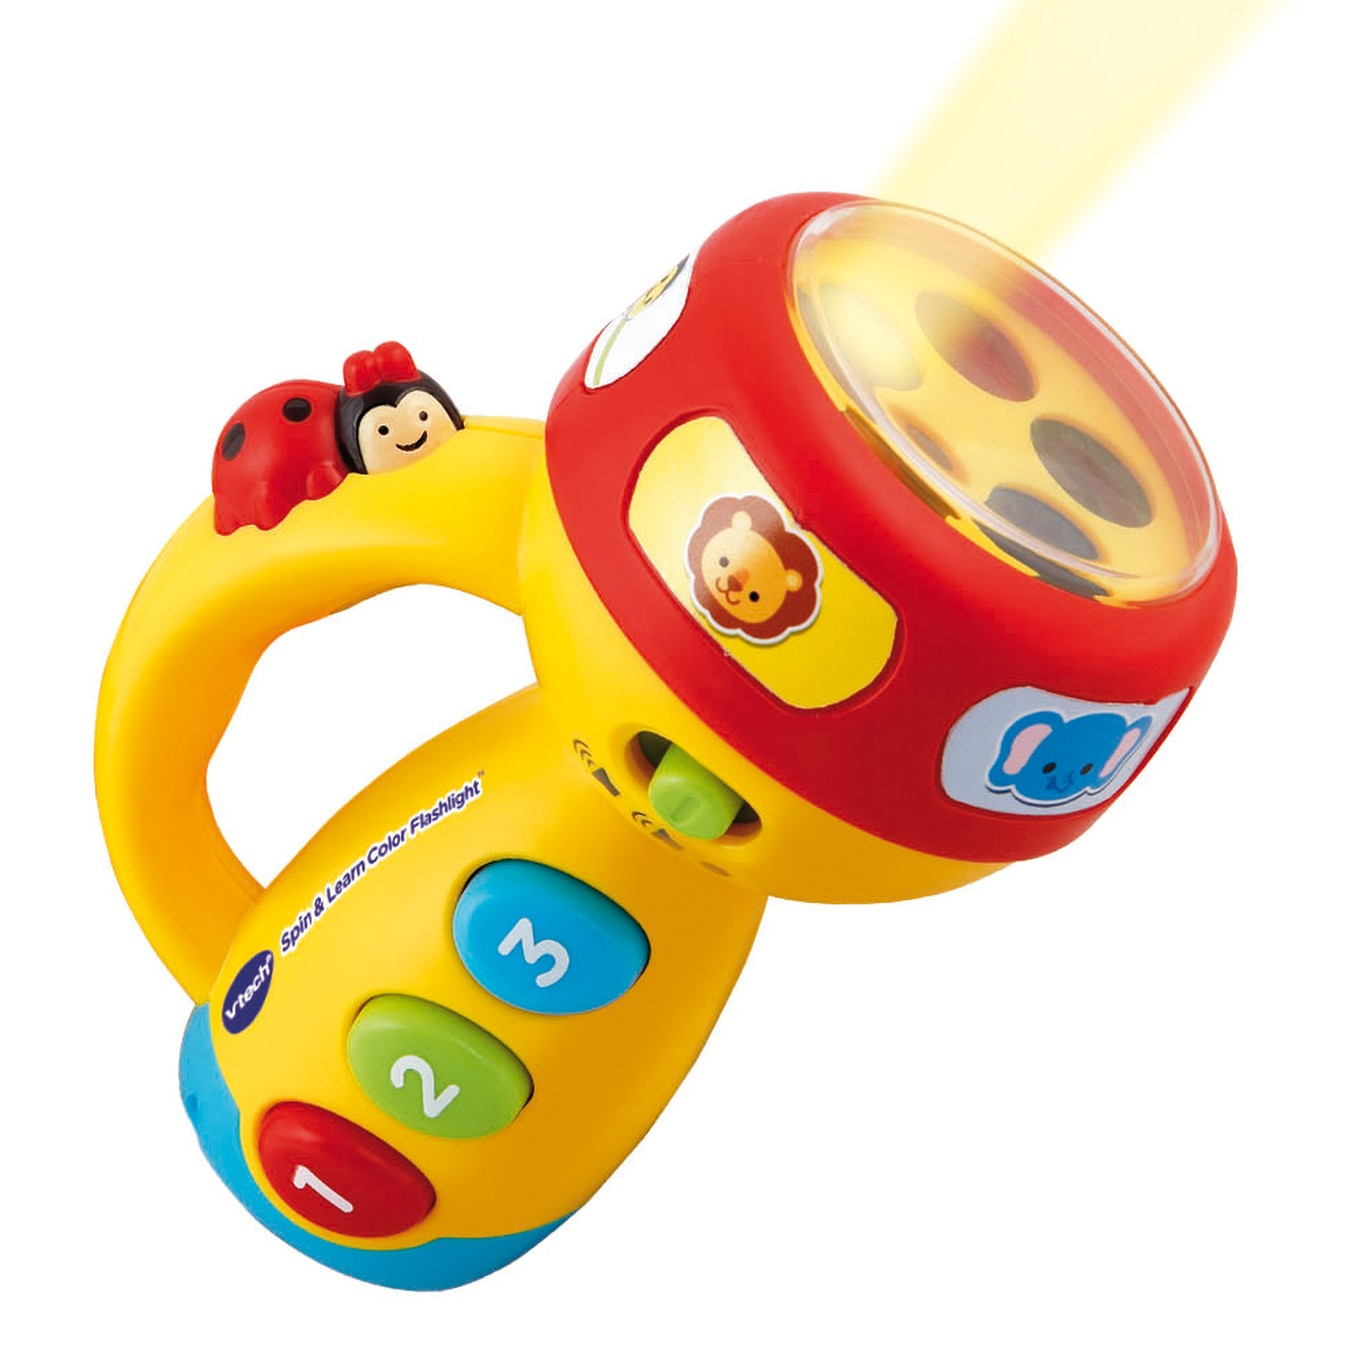 VTech Spin and Learn Color Flashlight - theterribletwos.org